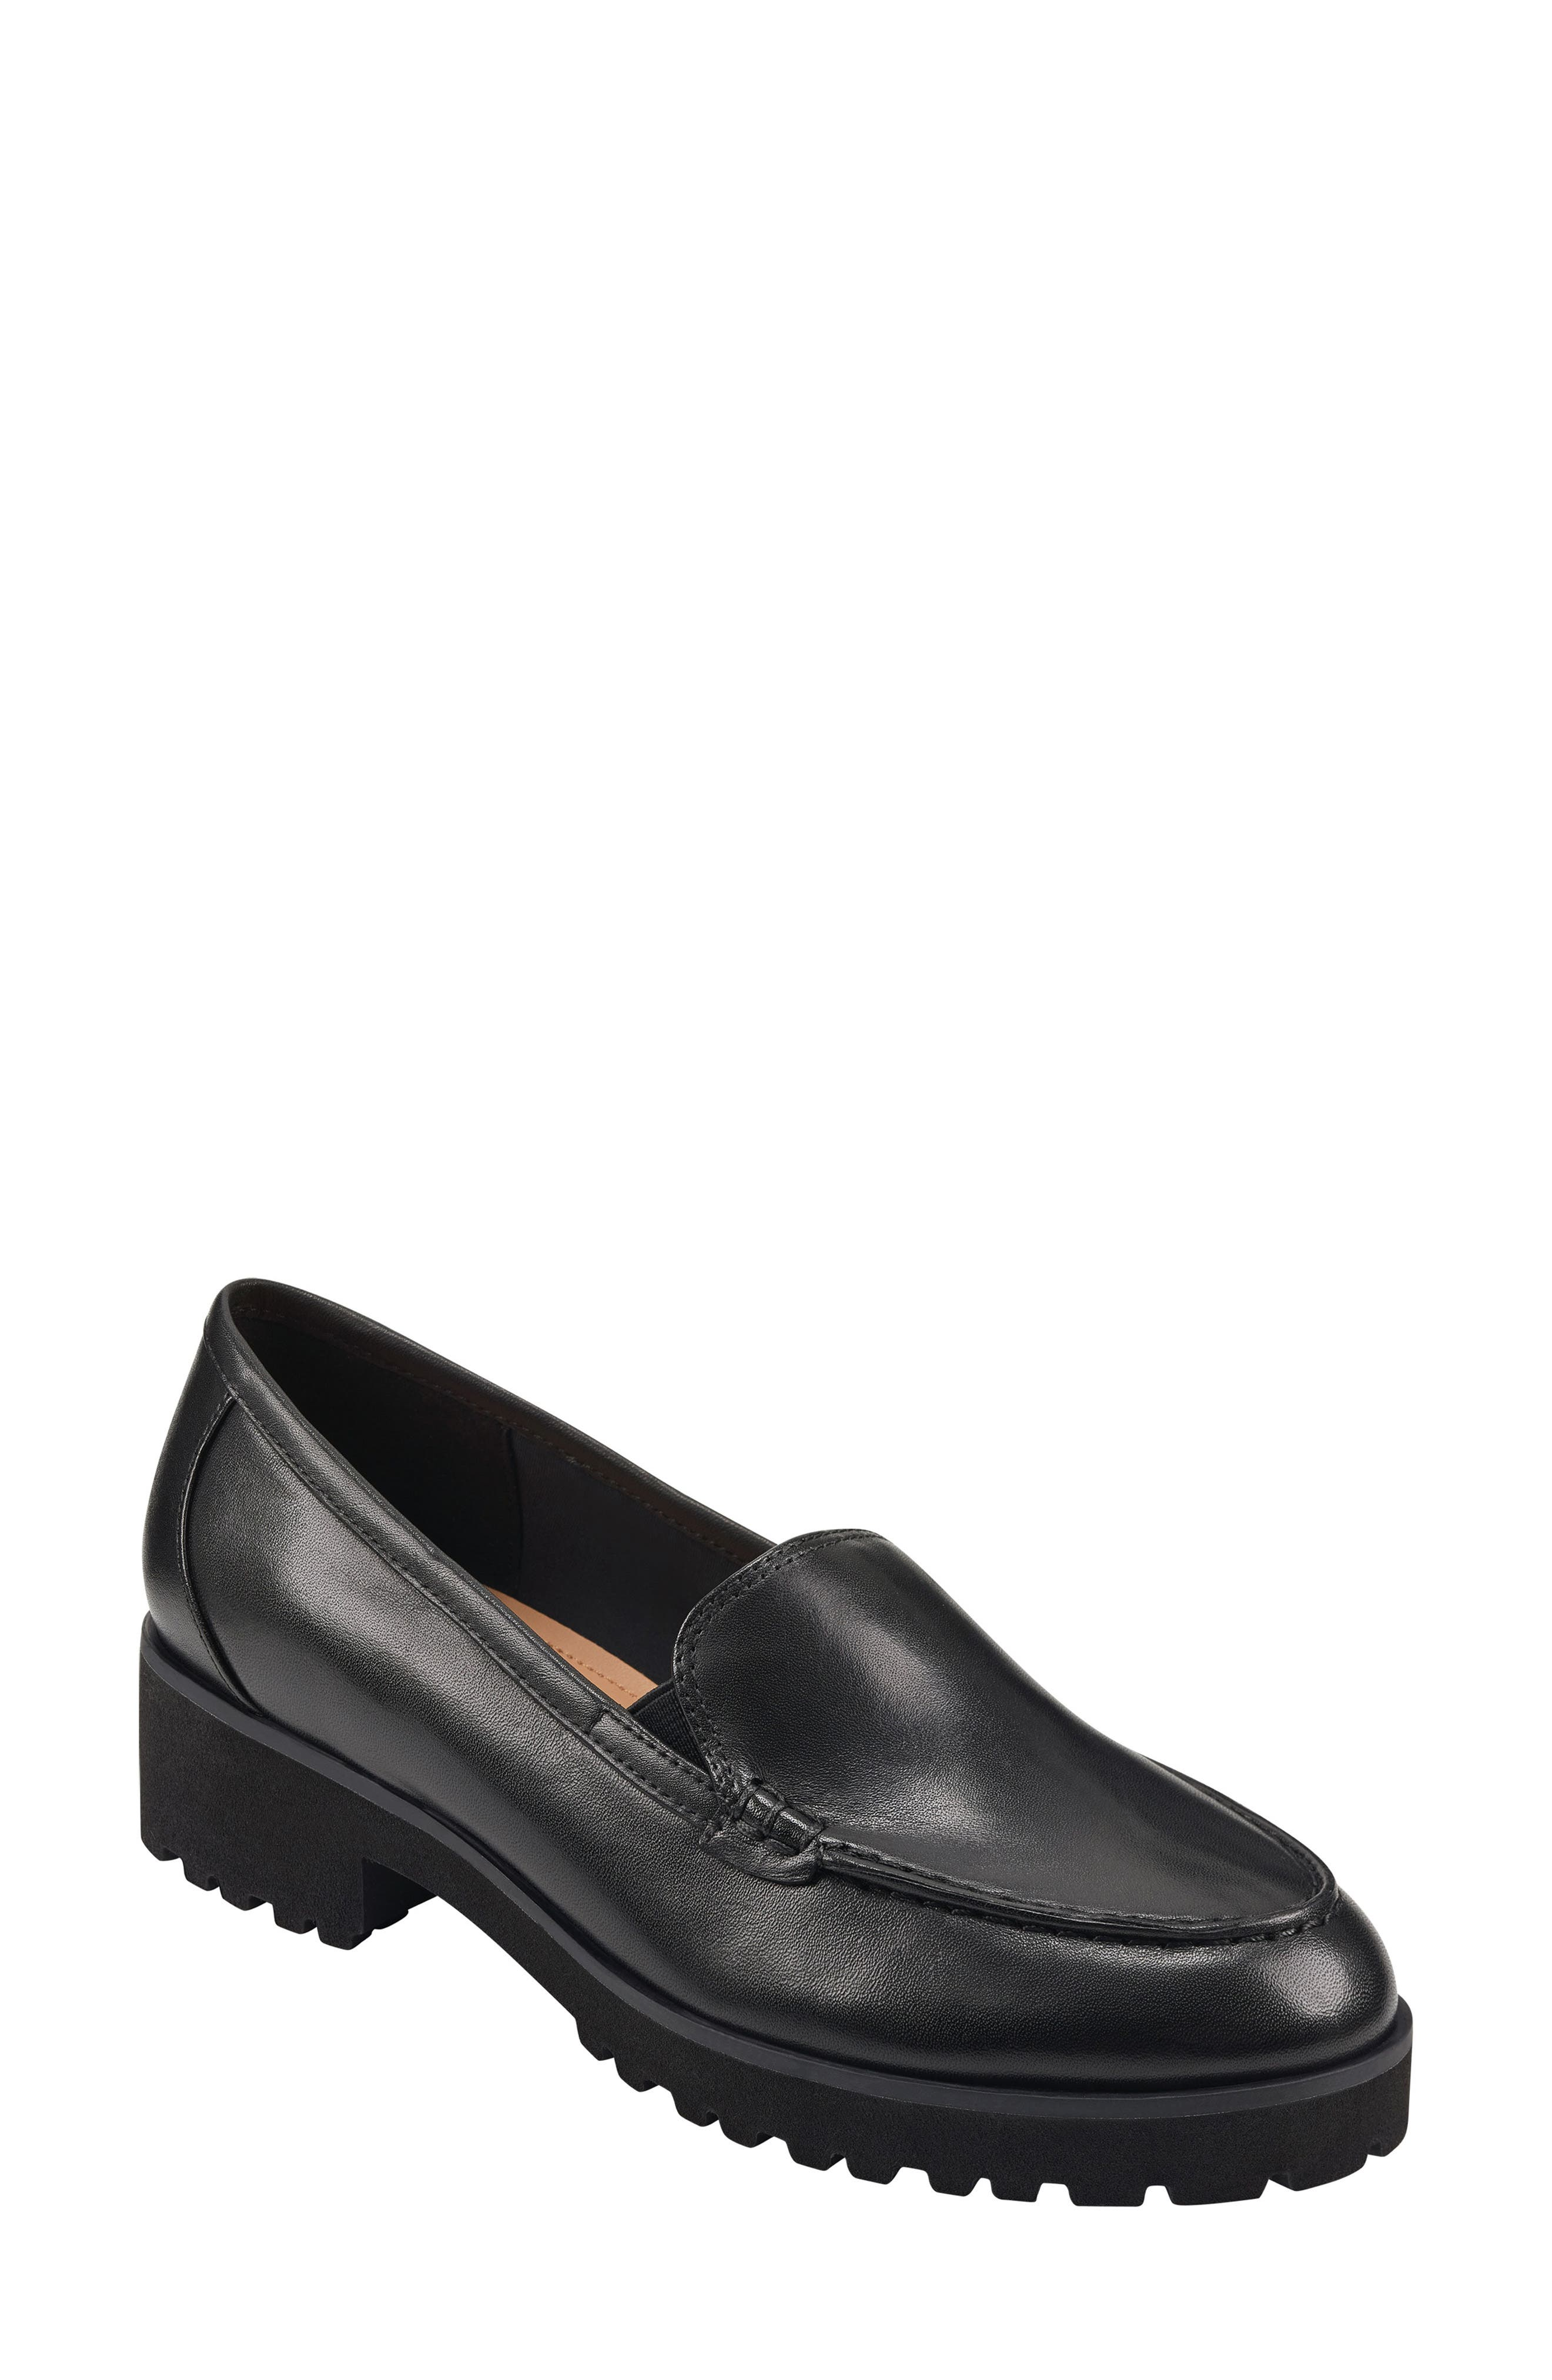 Evolve Wreath Loafer (Women)